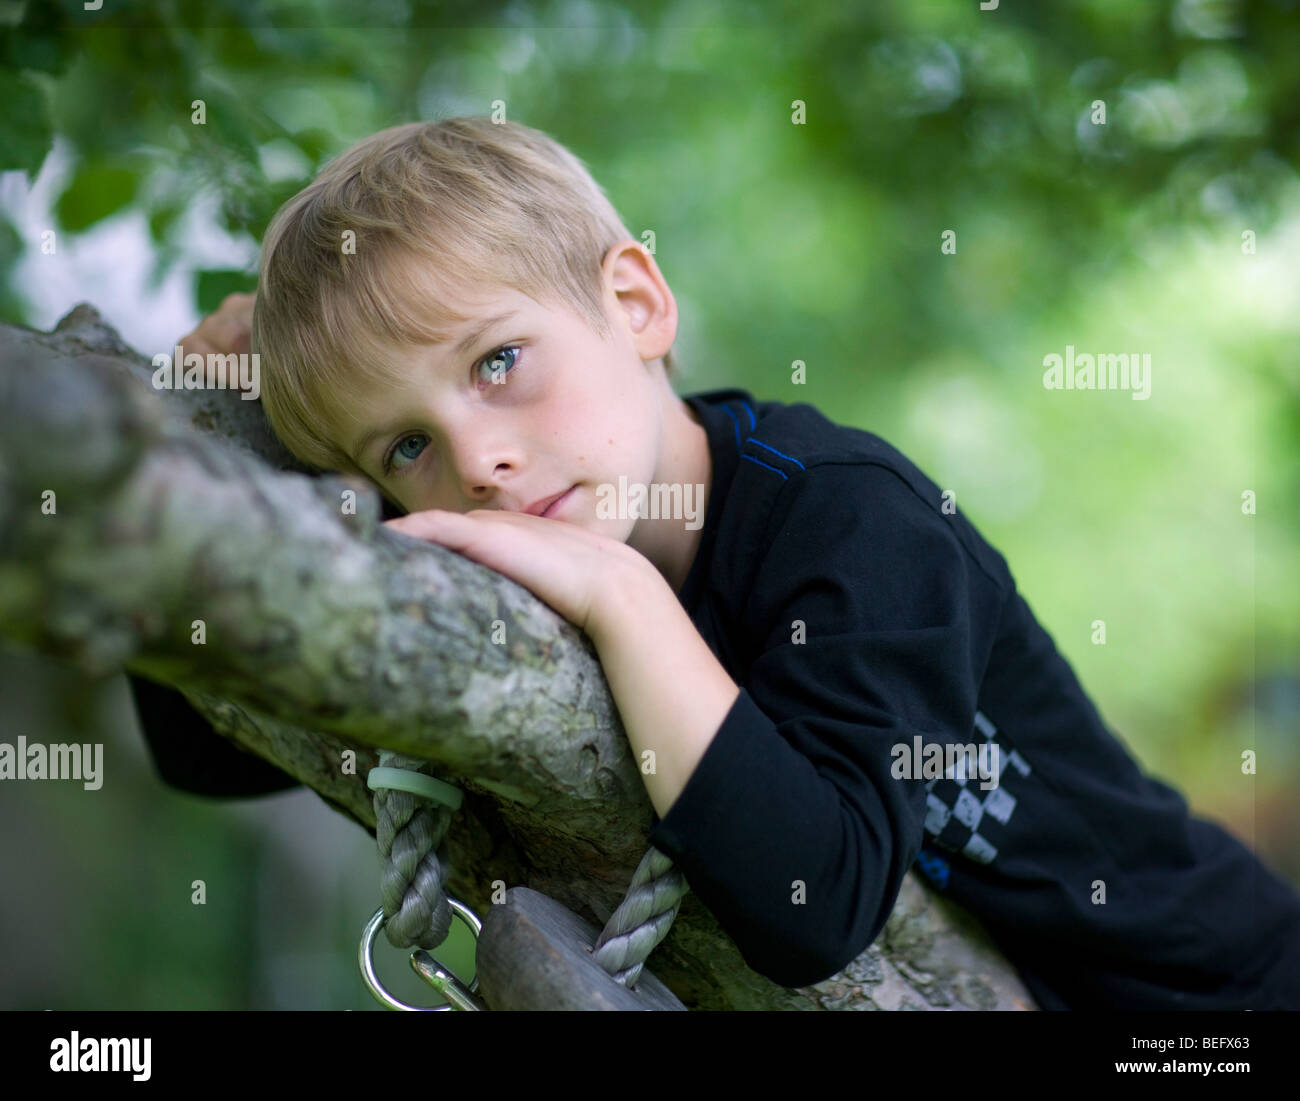 6 years old boy lying on a tree. - Stock Image